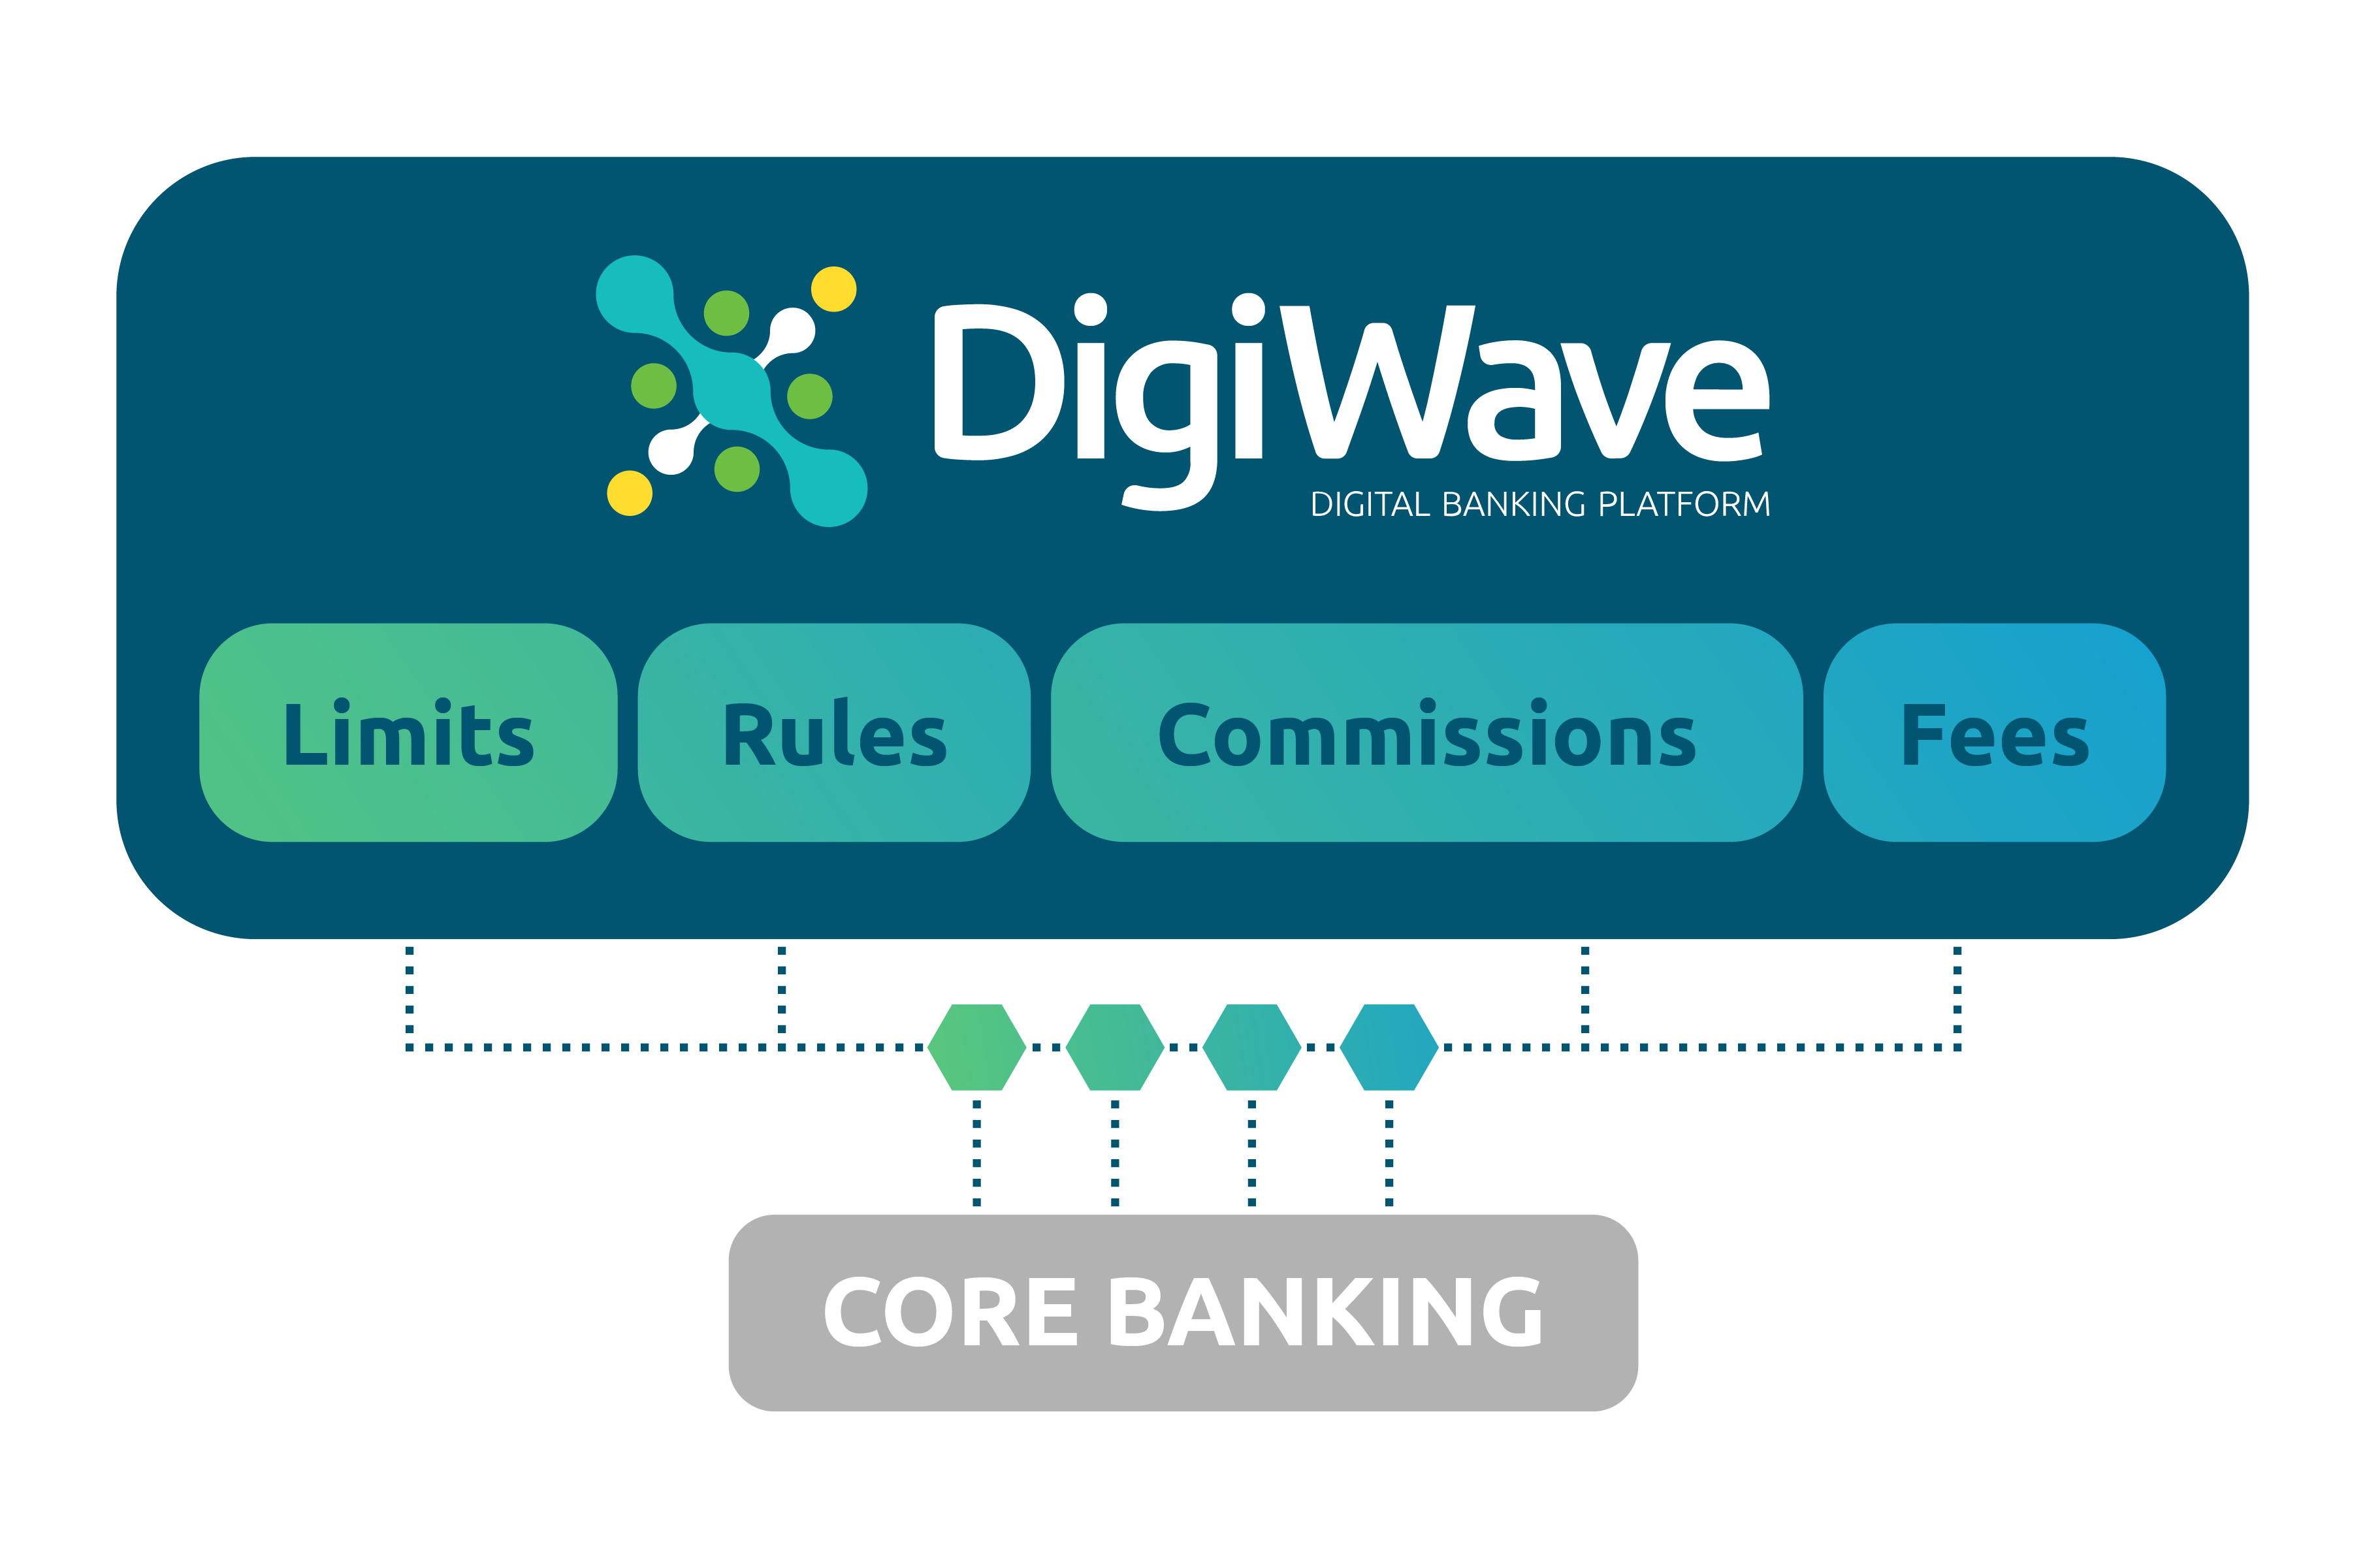 DigiWave Core Banking